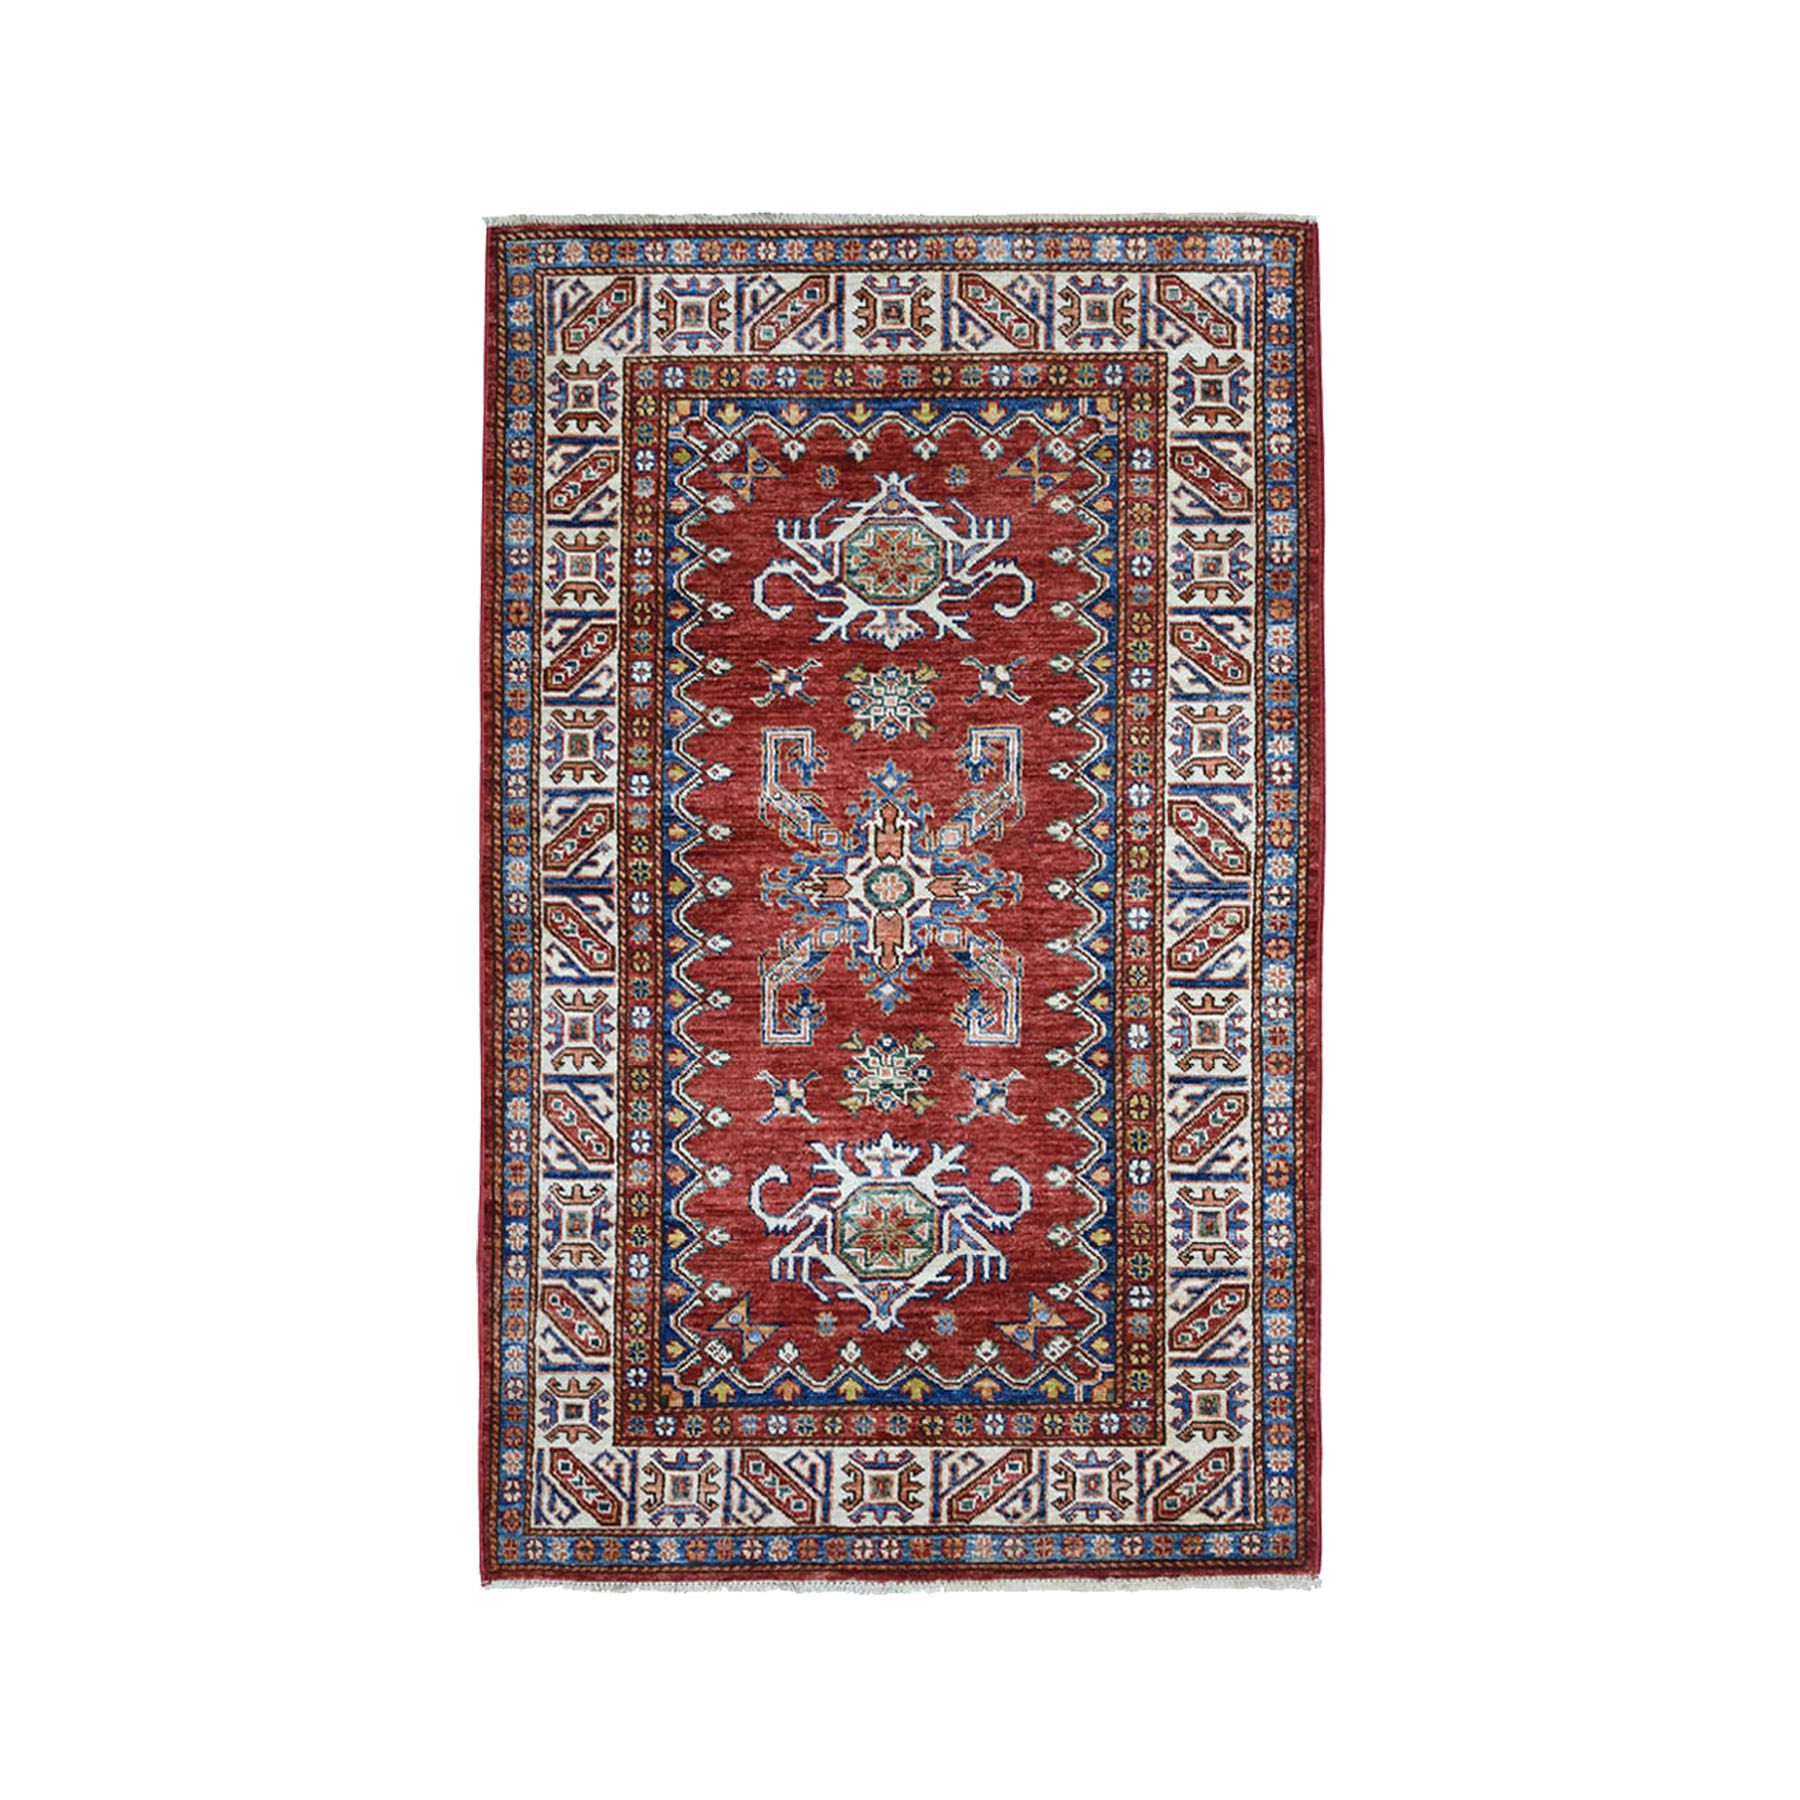 "3'1""X5'2"" Red Super Kazak Pure Wool Geometric Design Hand-Knotted Oriental Rug moae0b9a"